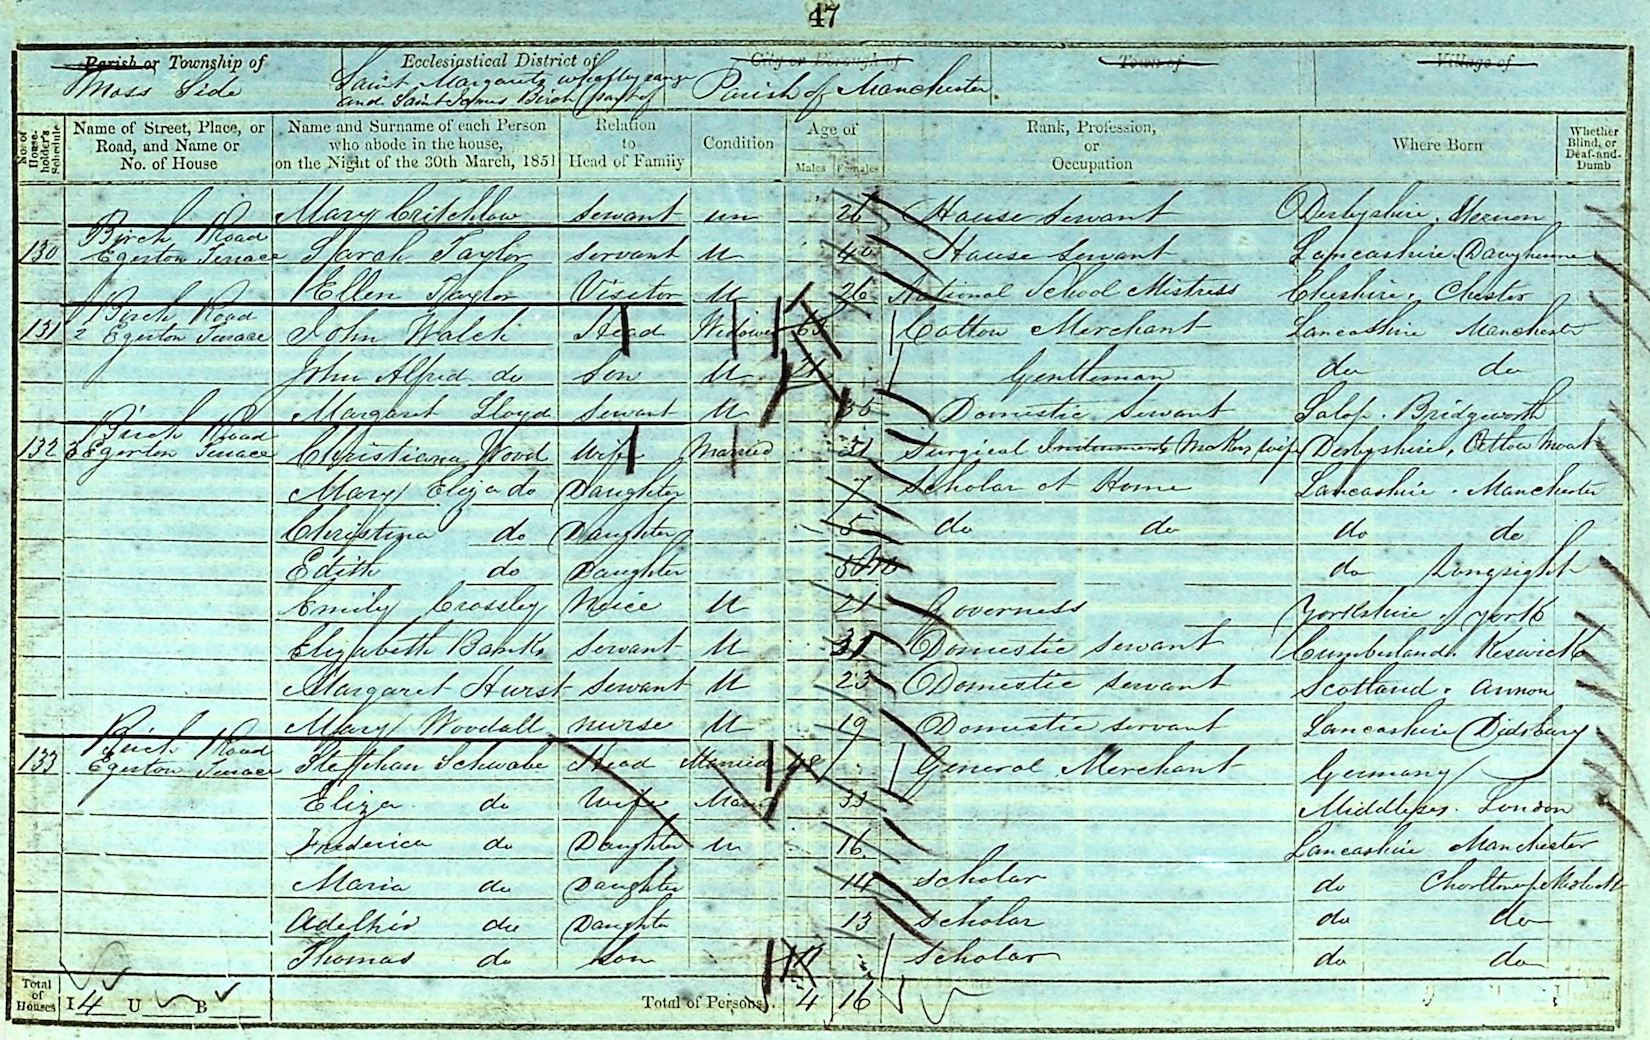 Stephan Schwabe 1851 census